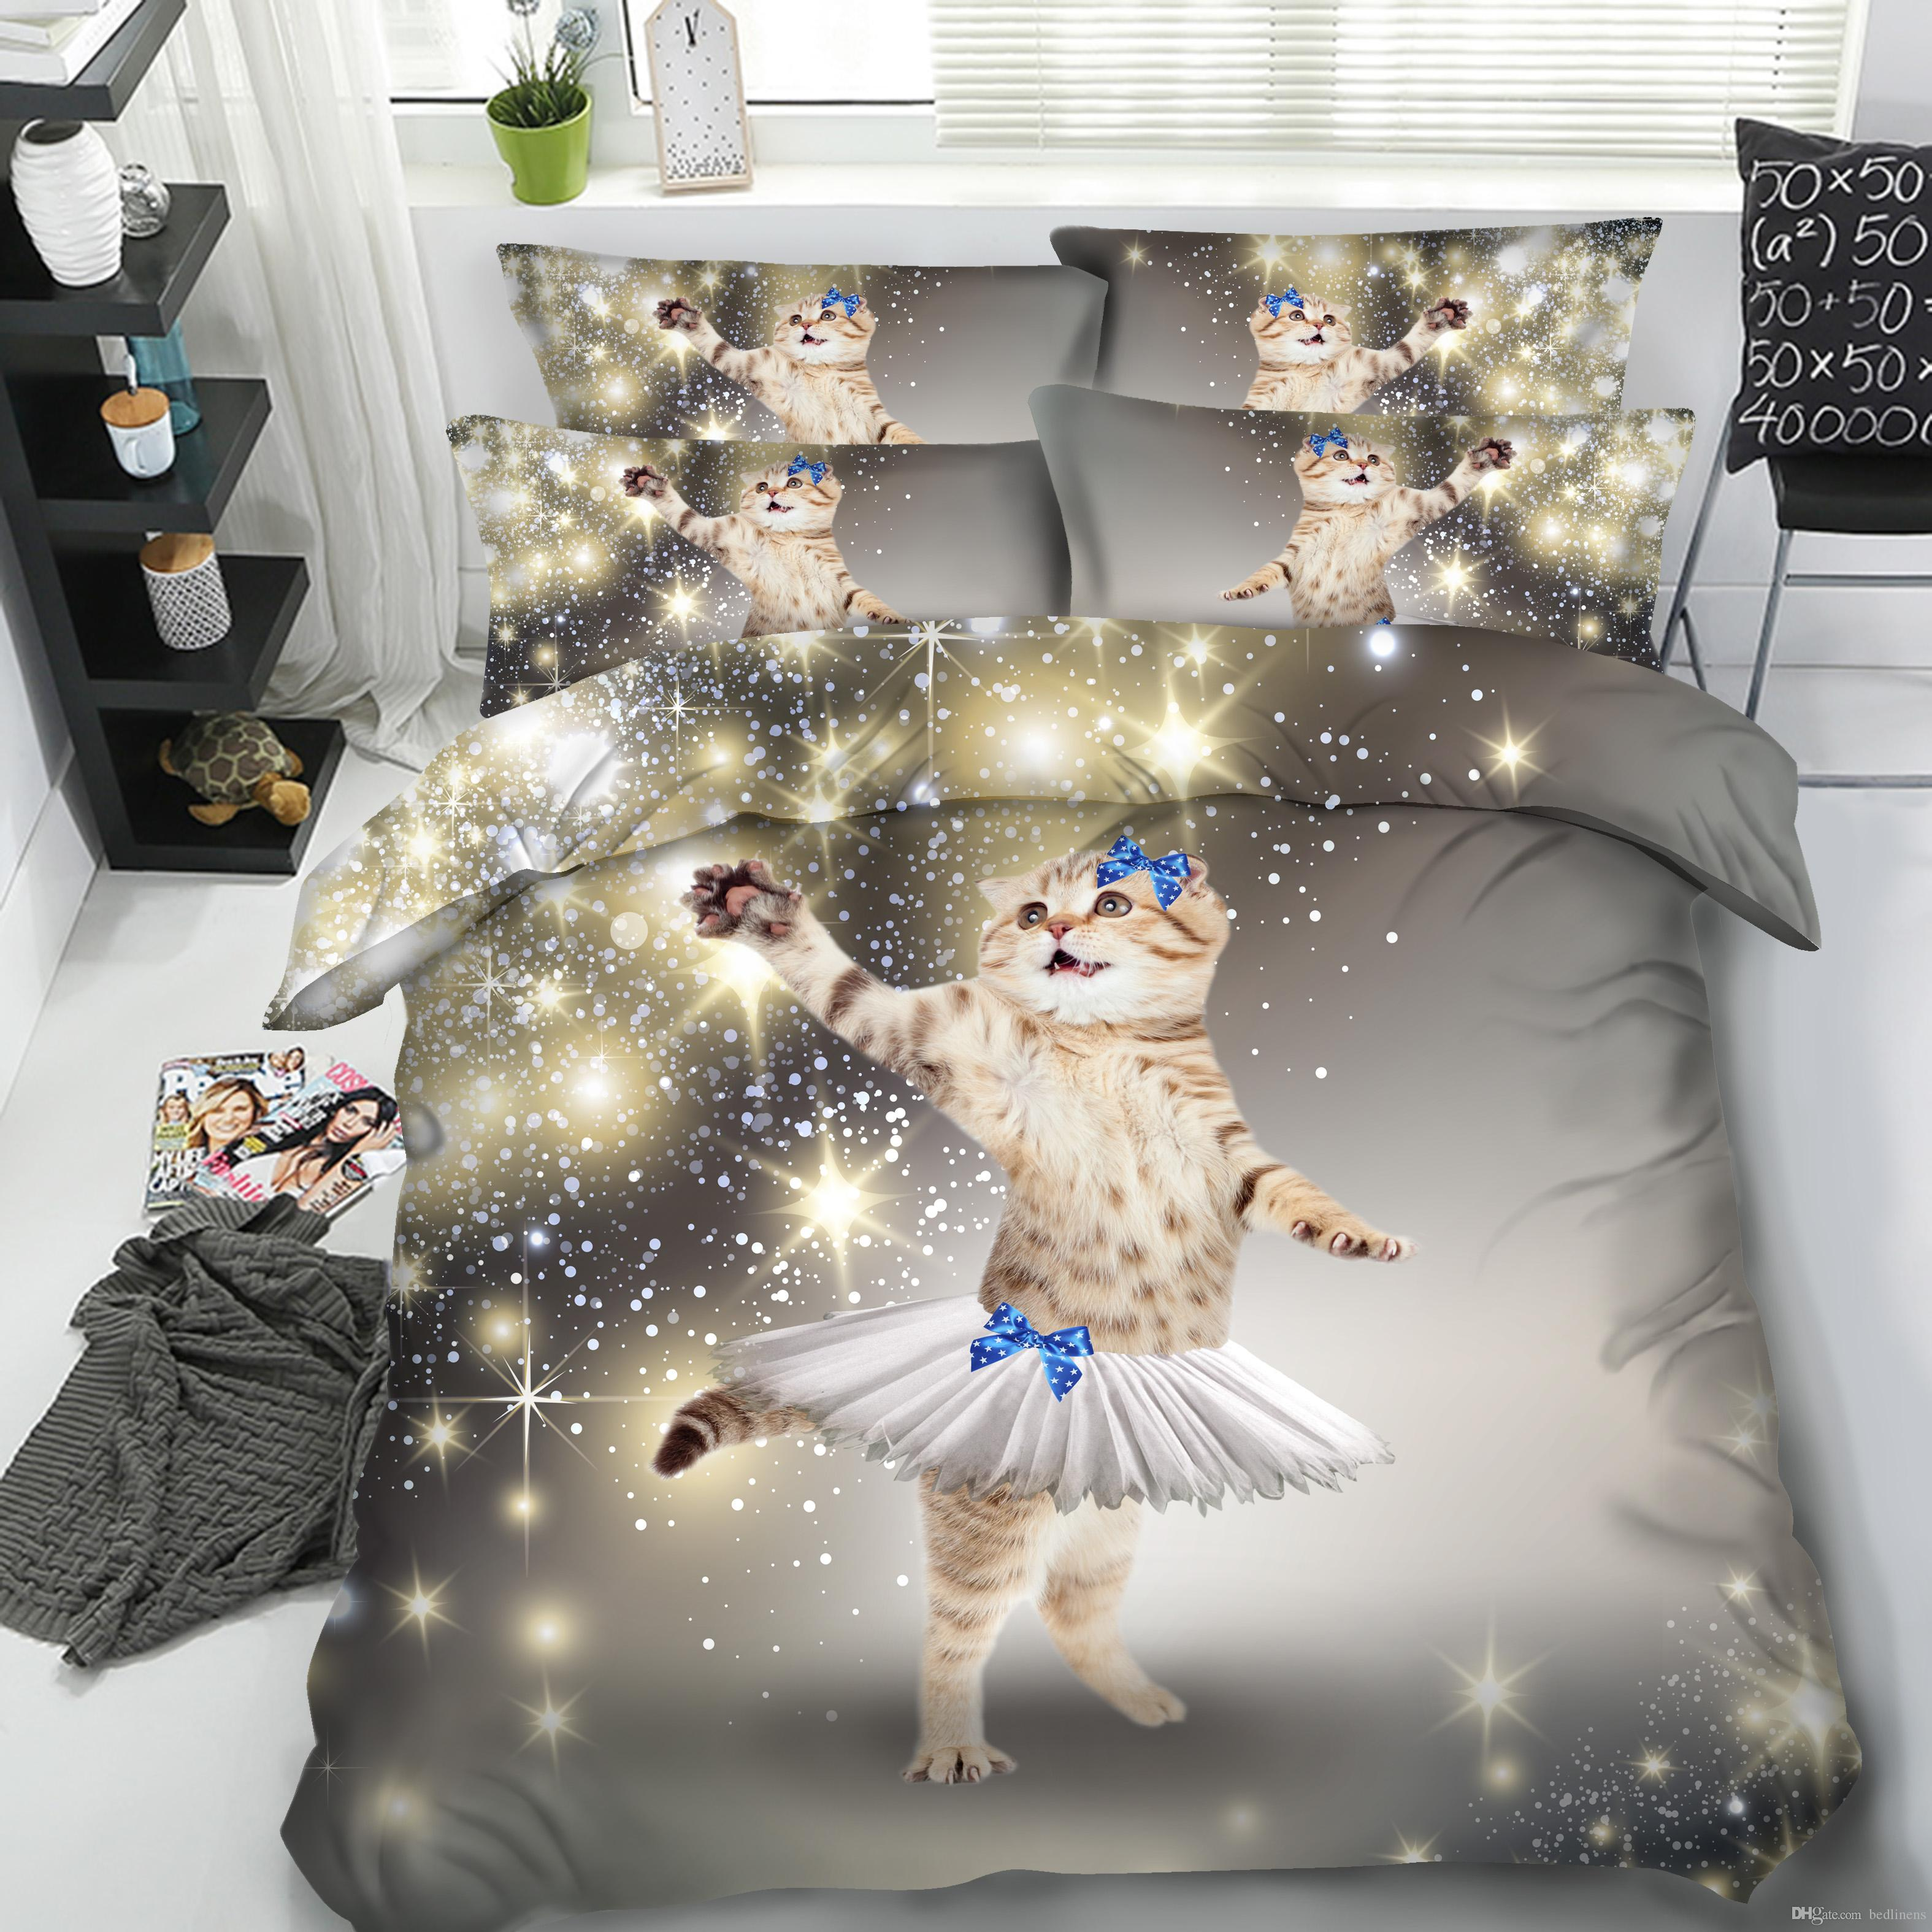 3D Printed Dress Galaxy Cat Bedding Set Twin Full Queen King Size Bedspread Bedclothes Duvet Covers Pillow Shams 3PC Comforter Set Animal